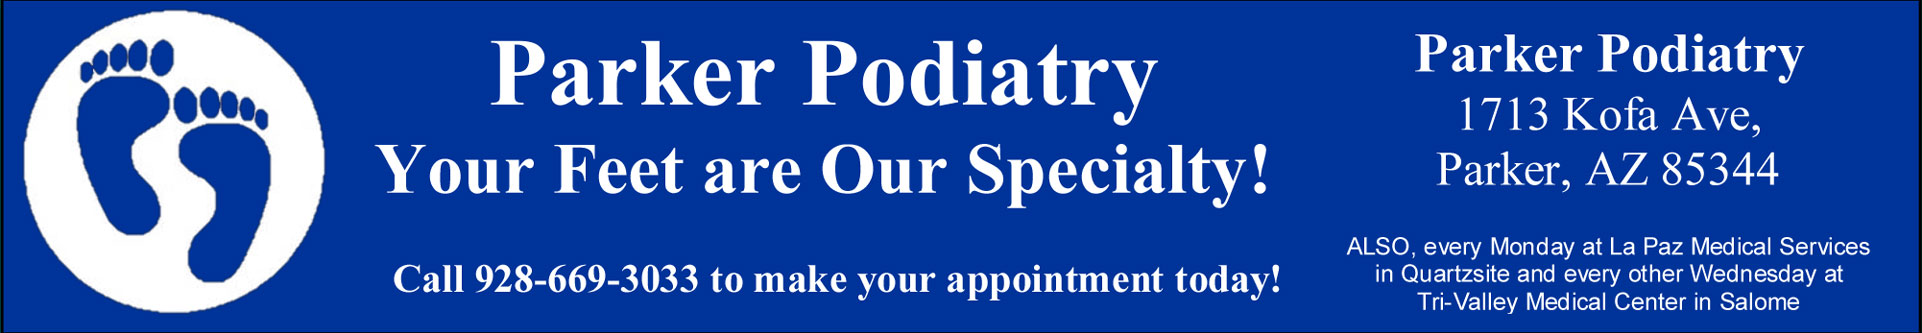 An image of foot prints: Parker Podiatry, your feet are out specialty. Call 928-669-3033 to make your appointment today. Address is 1713 Kofa Ave, Parker, AZ 85344. Also, every Monday at La Paz Medical Services in Quartzsite and every other Wednesday at Tri-Valley Medical Center in Salome.